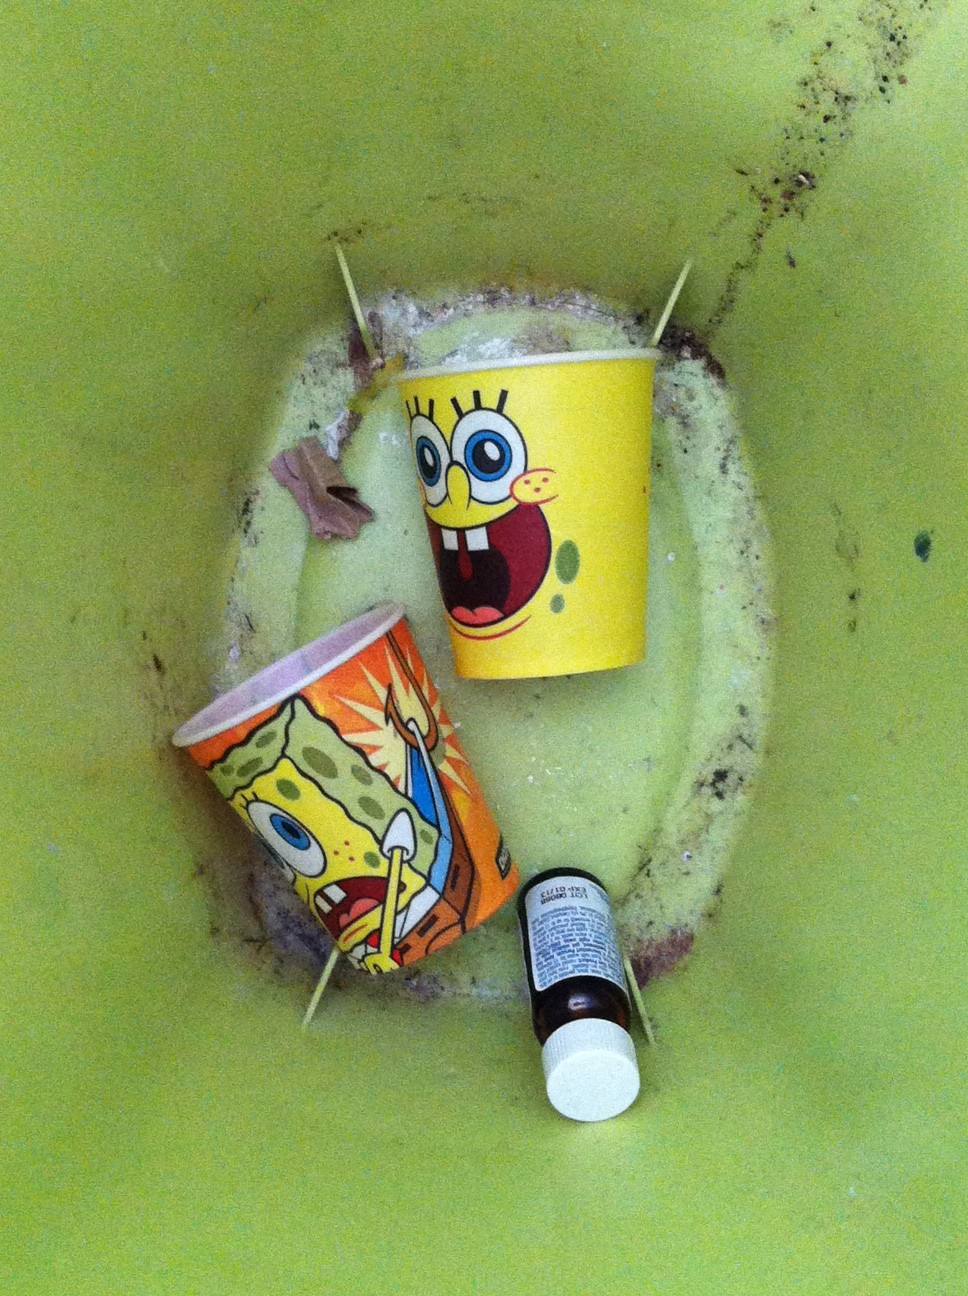 SpongeBob cups in trash.